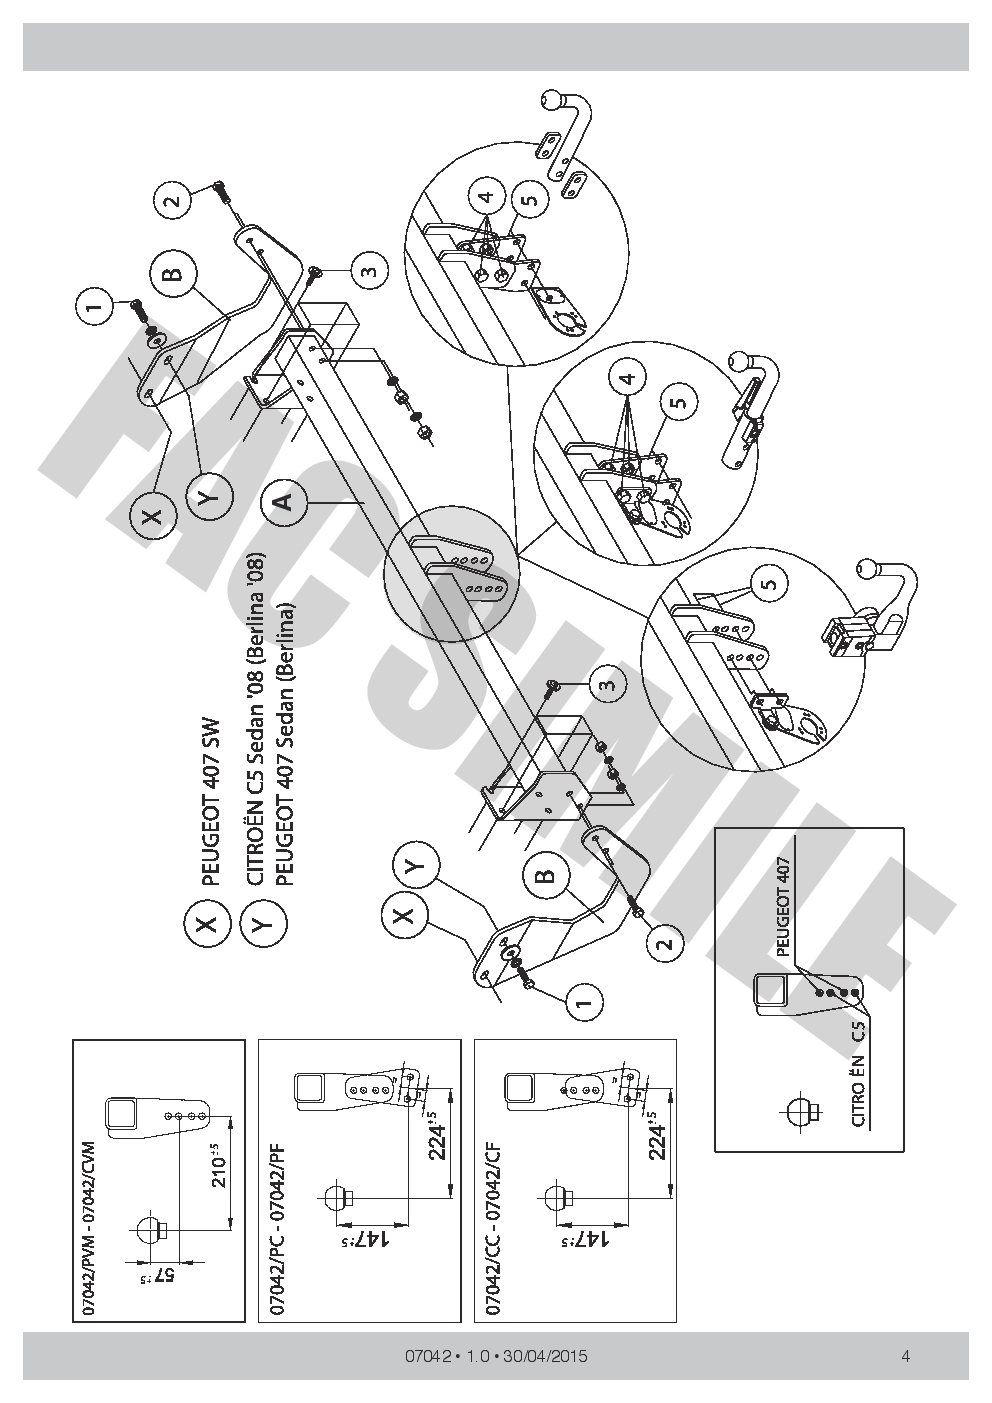 peugeot 308 towbar wiring diagram citroen towbar wiring diagram wiring diagram data  citroen towbar wiring diagram wiring